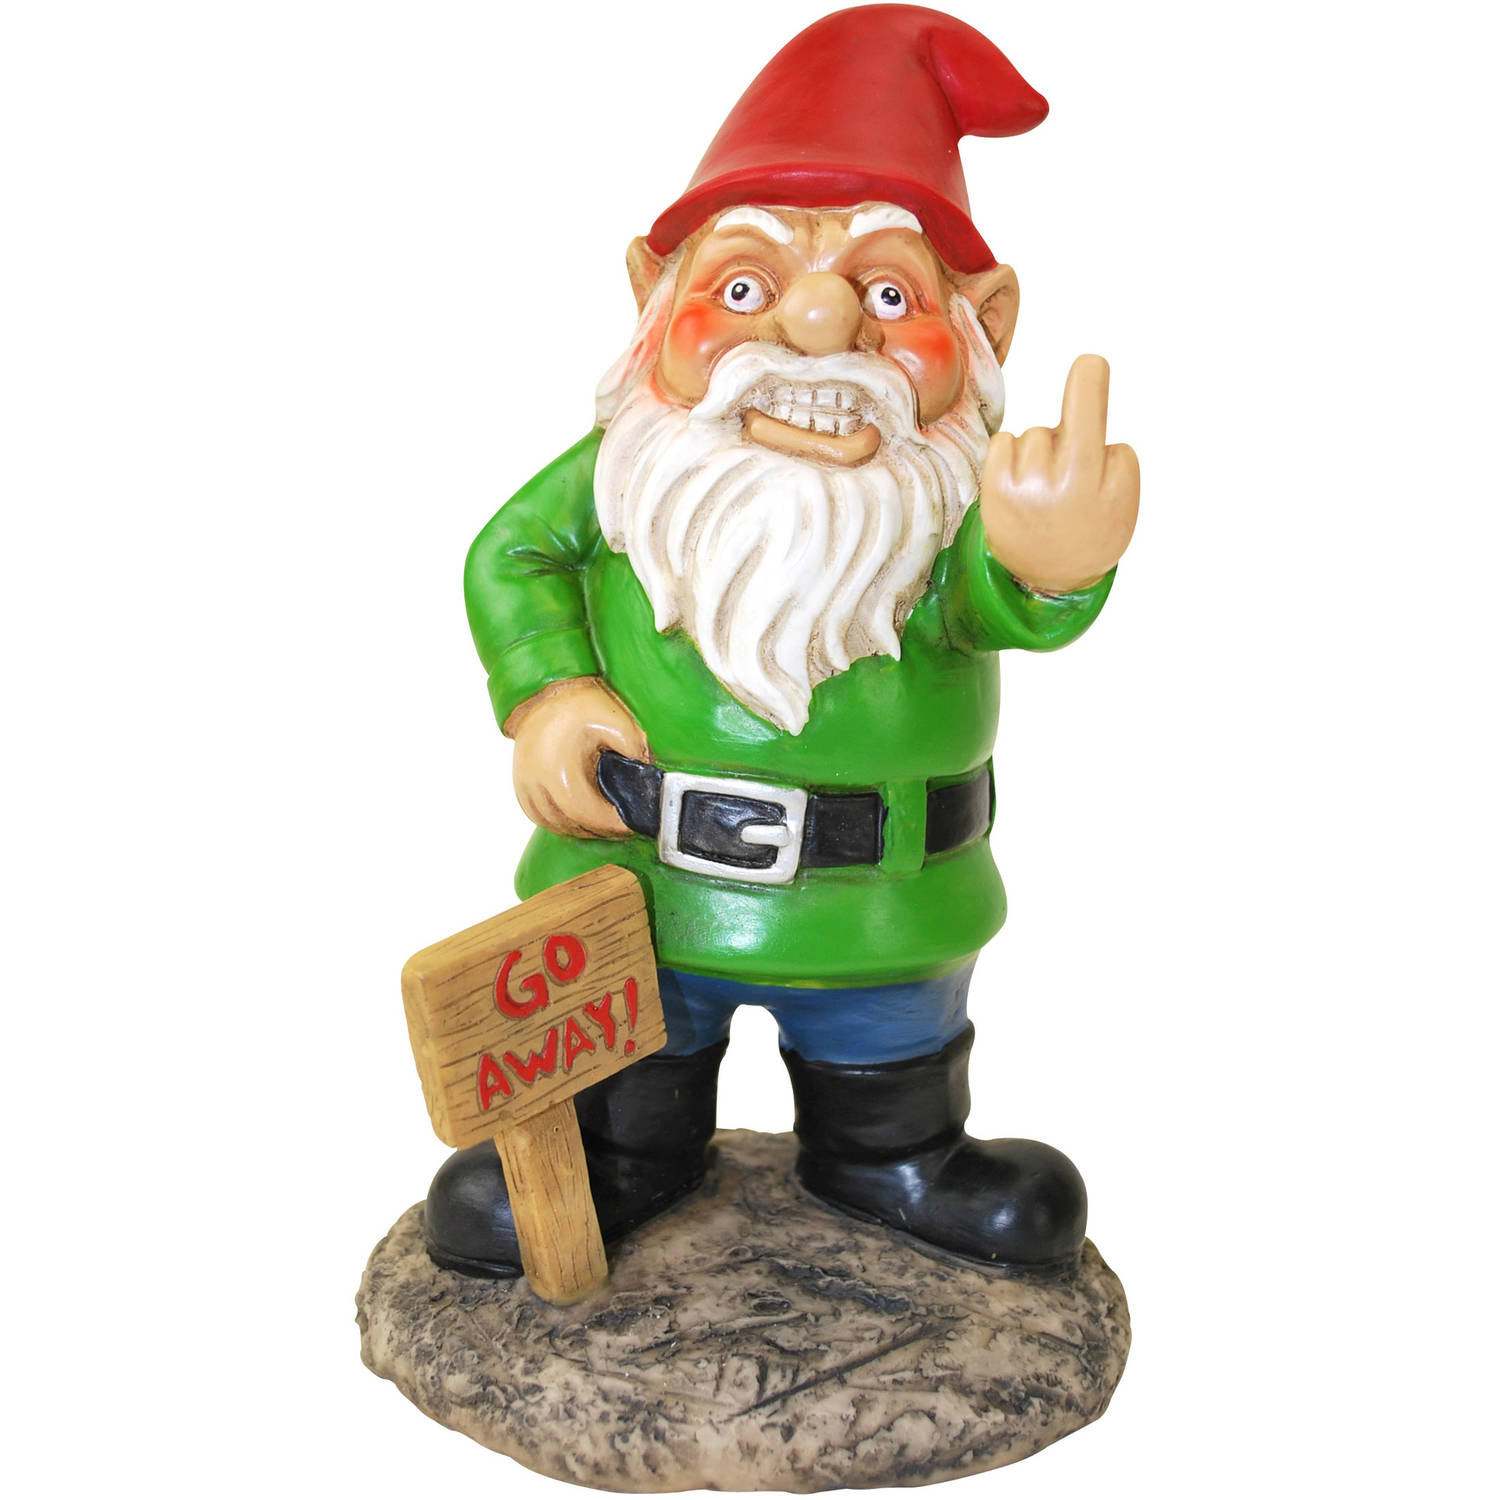 Go Away! Gnome by Generic